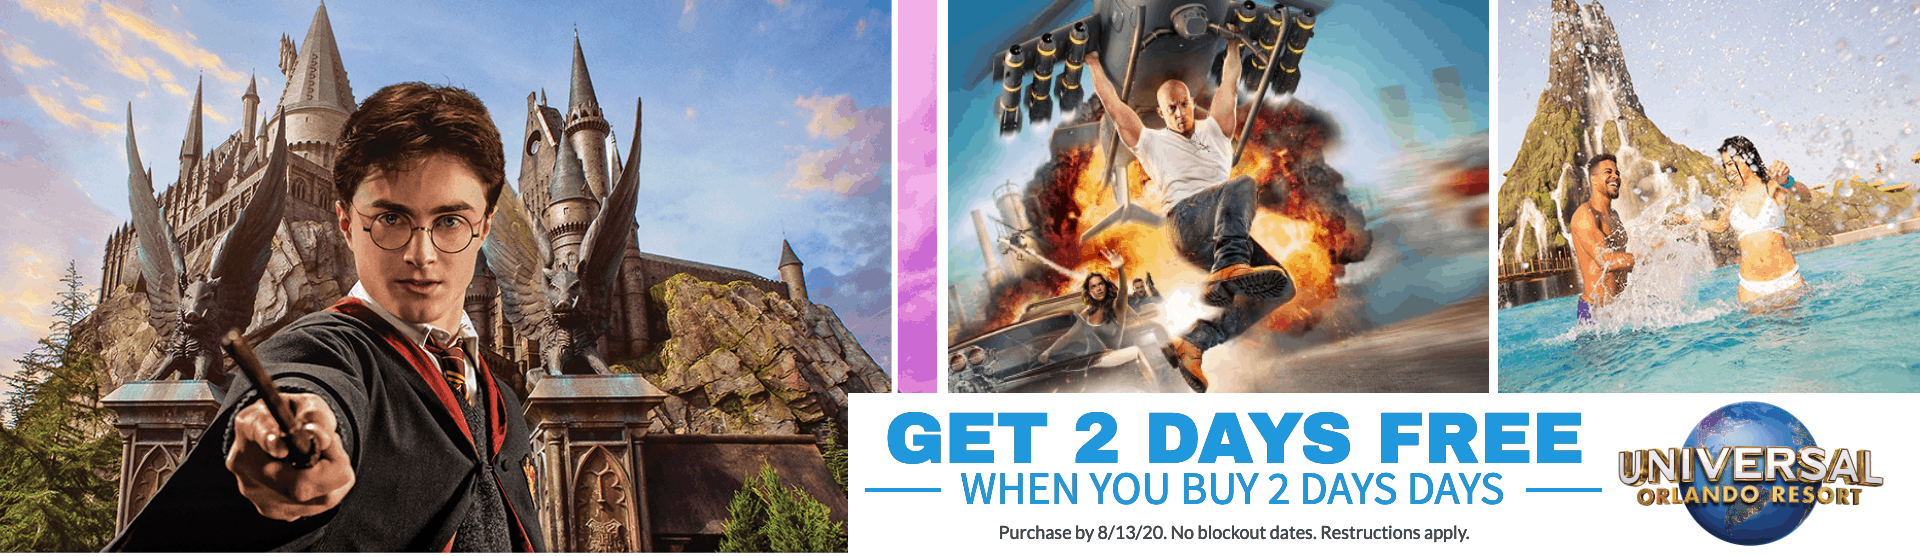 KGS Attraction Tickets - Universal Orlando